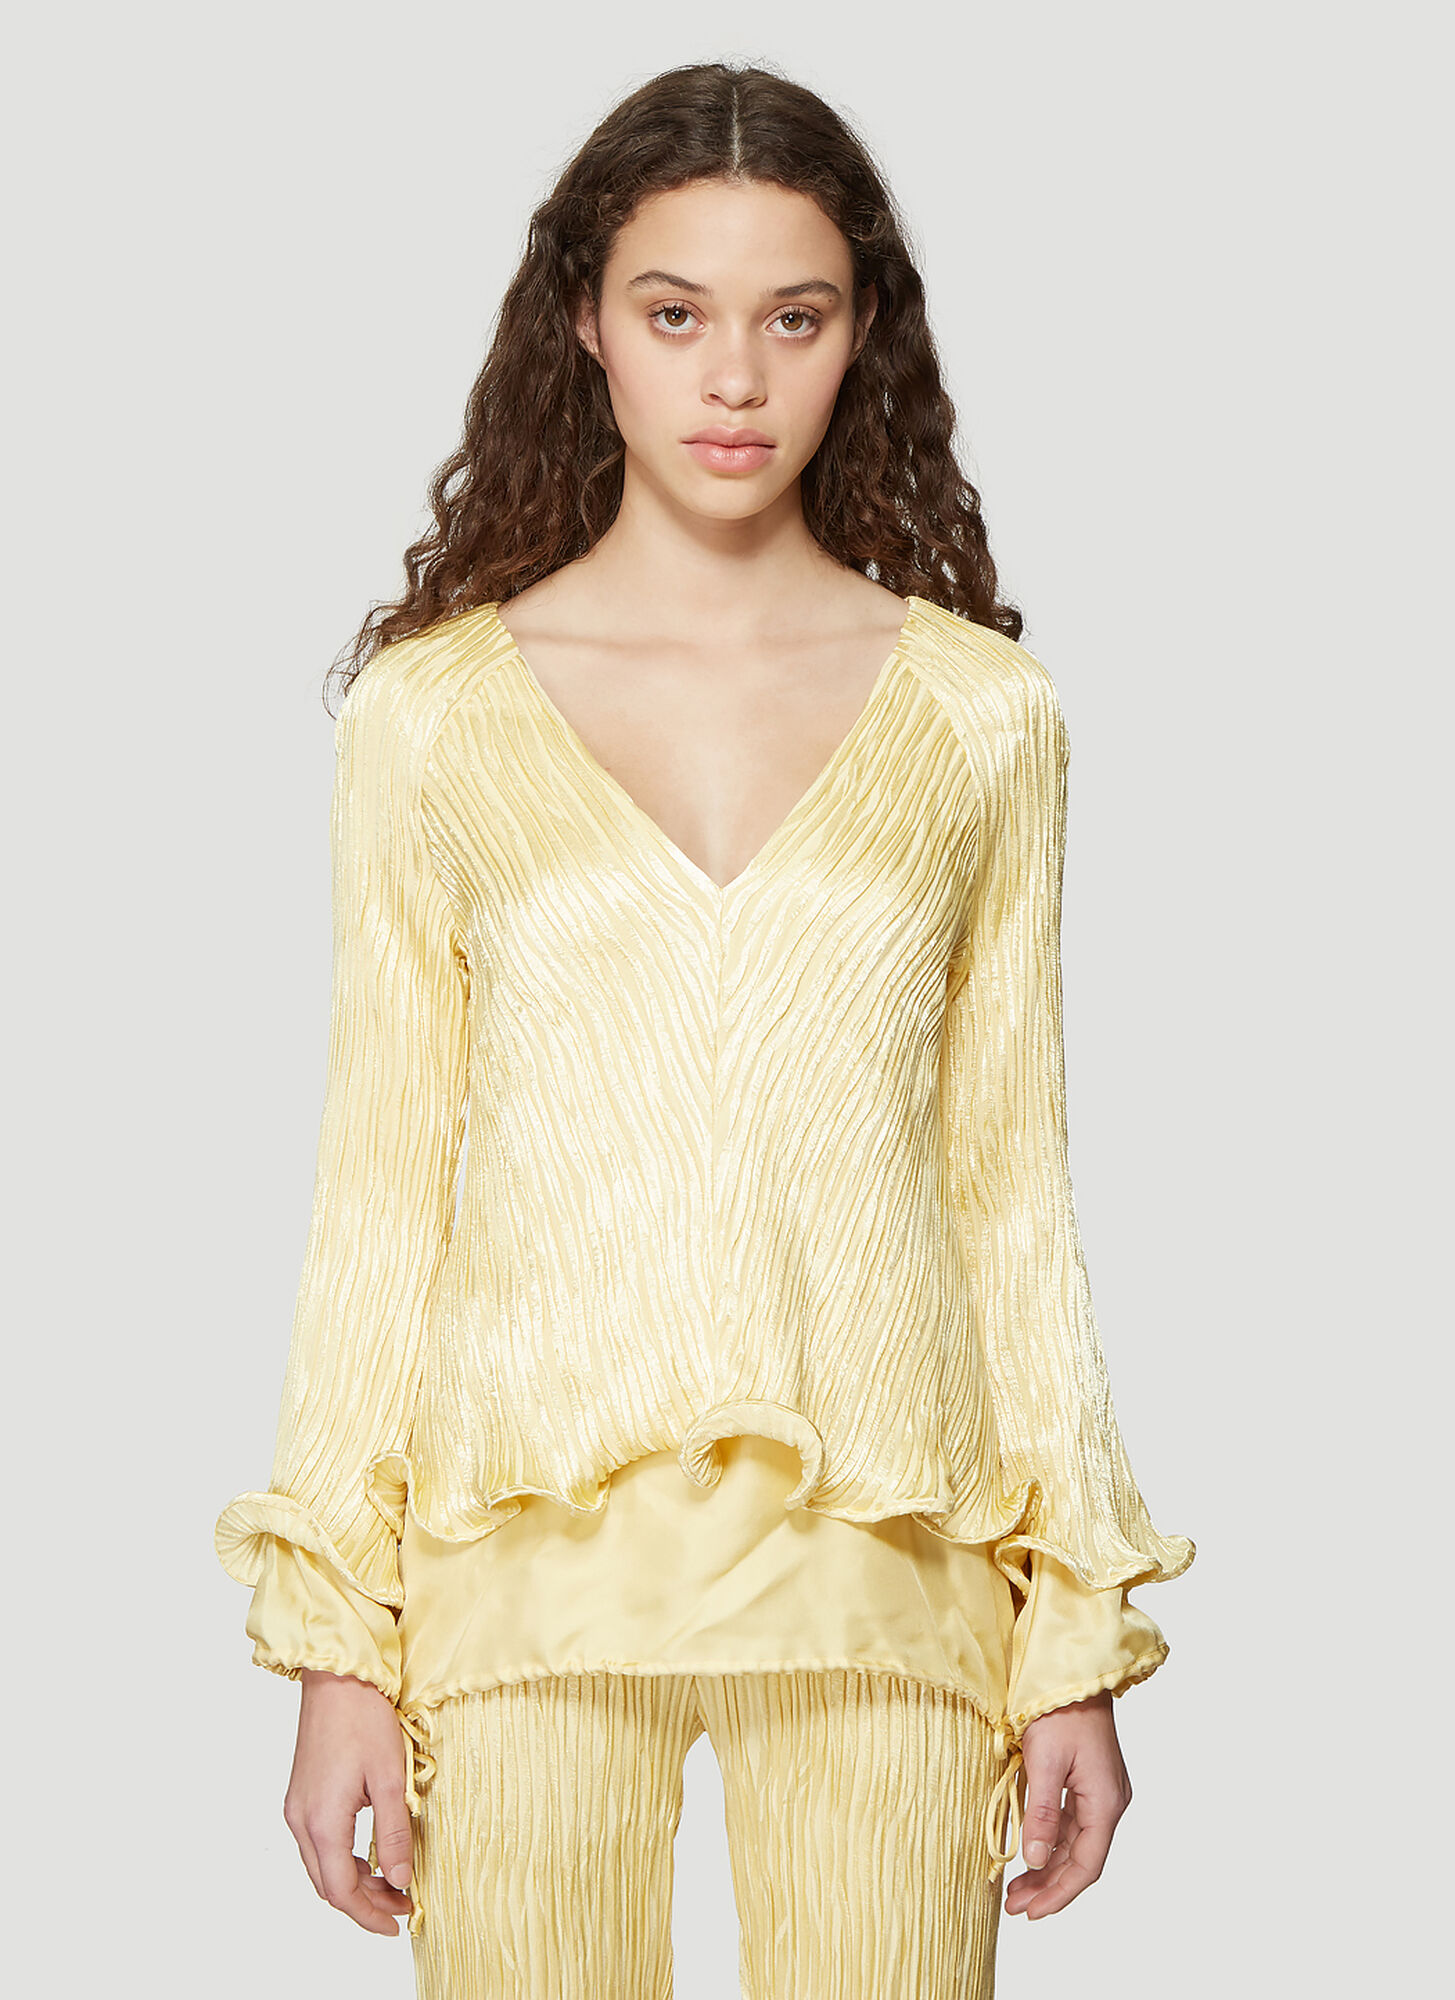 Photo of Sies Marjan Freida Crinkled Satin Linen V-Neck Ruffle Top in Yellow - Sies Marjan Tops